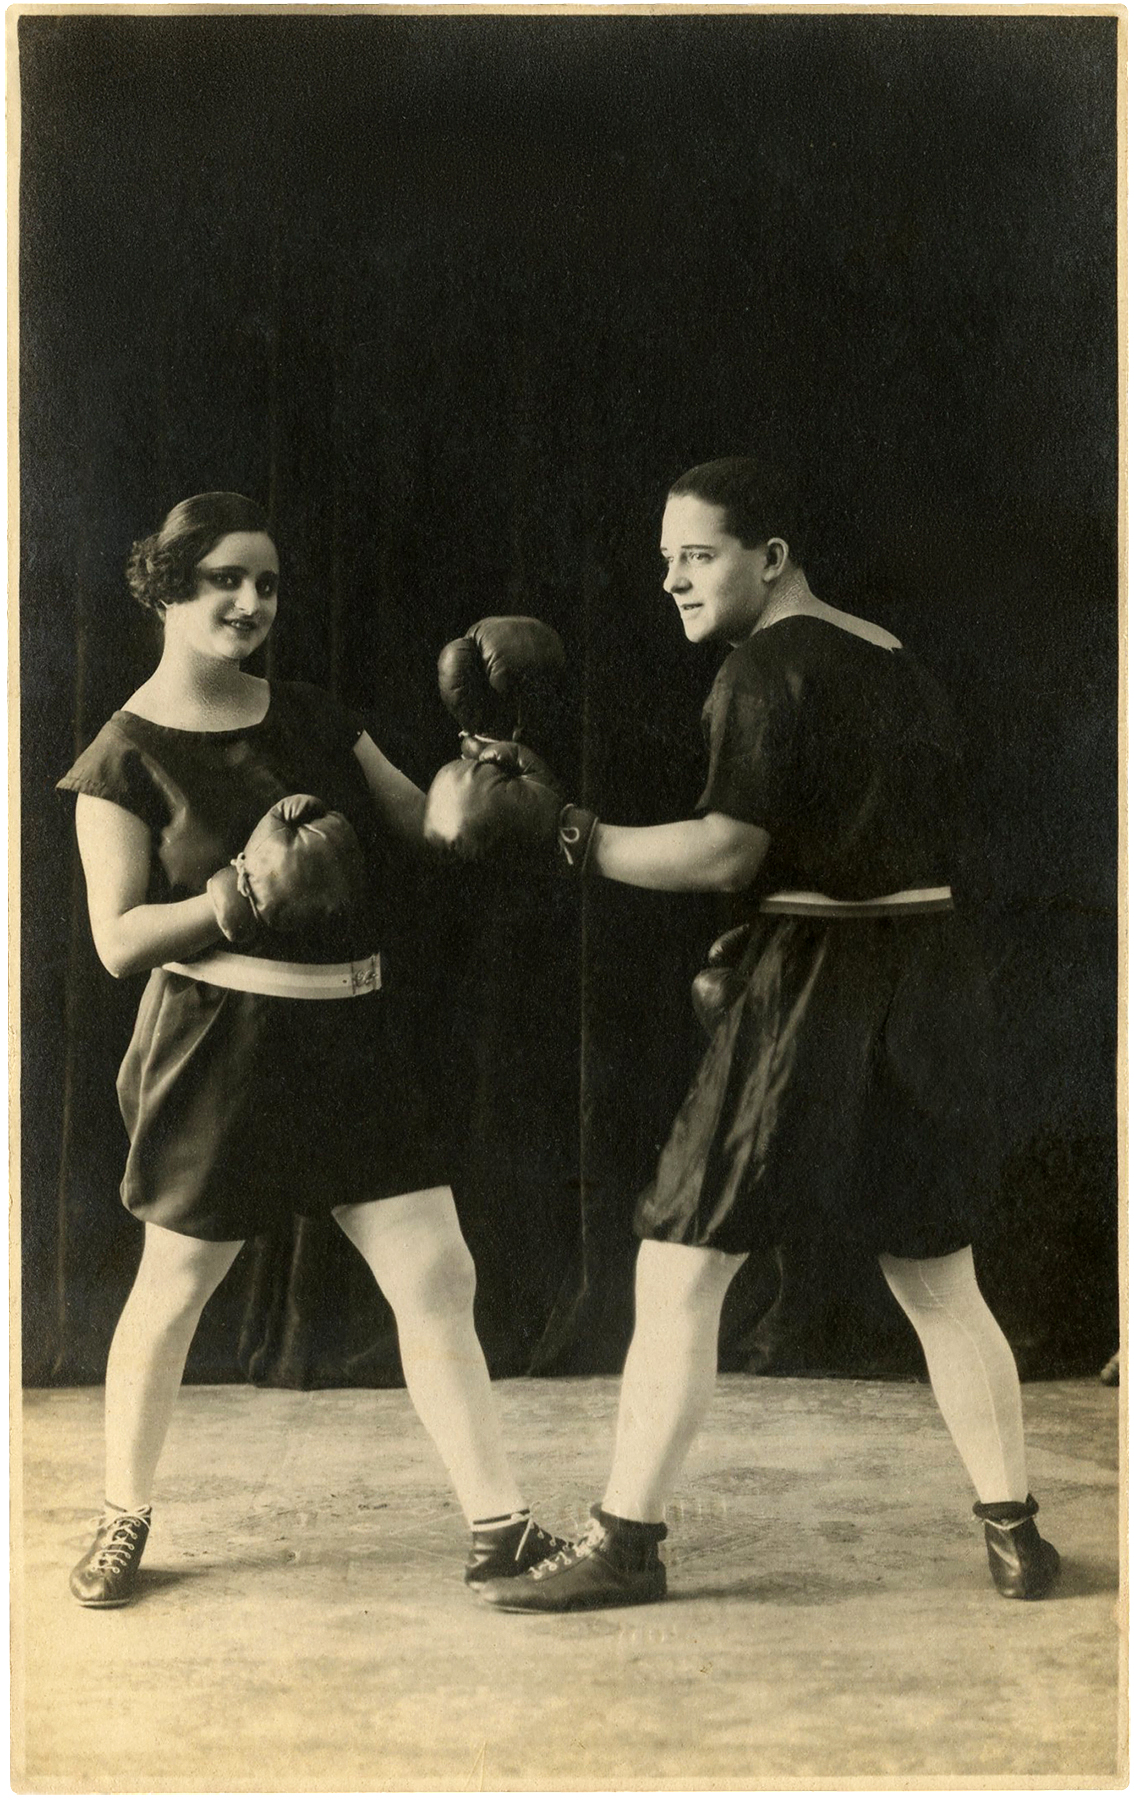 Boxer clipart vintage. Man and woman boxing